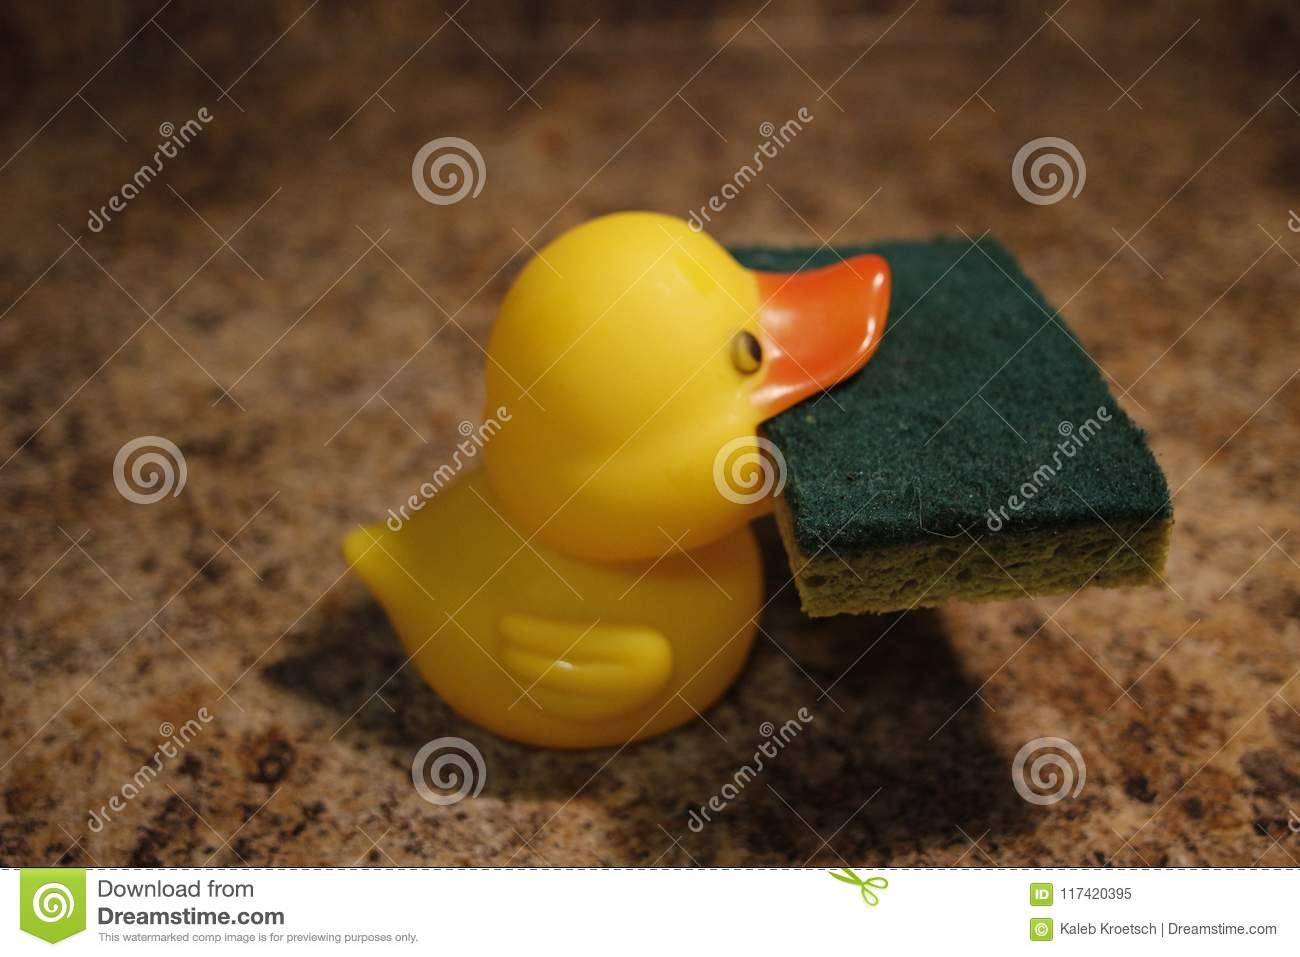 Yellow Rubber Duck Isolated Holding A Sponge Stock Image - Image of ...